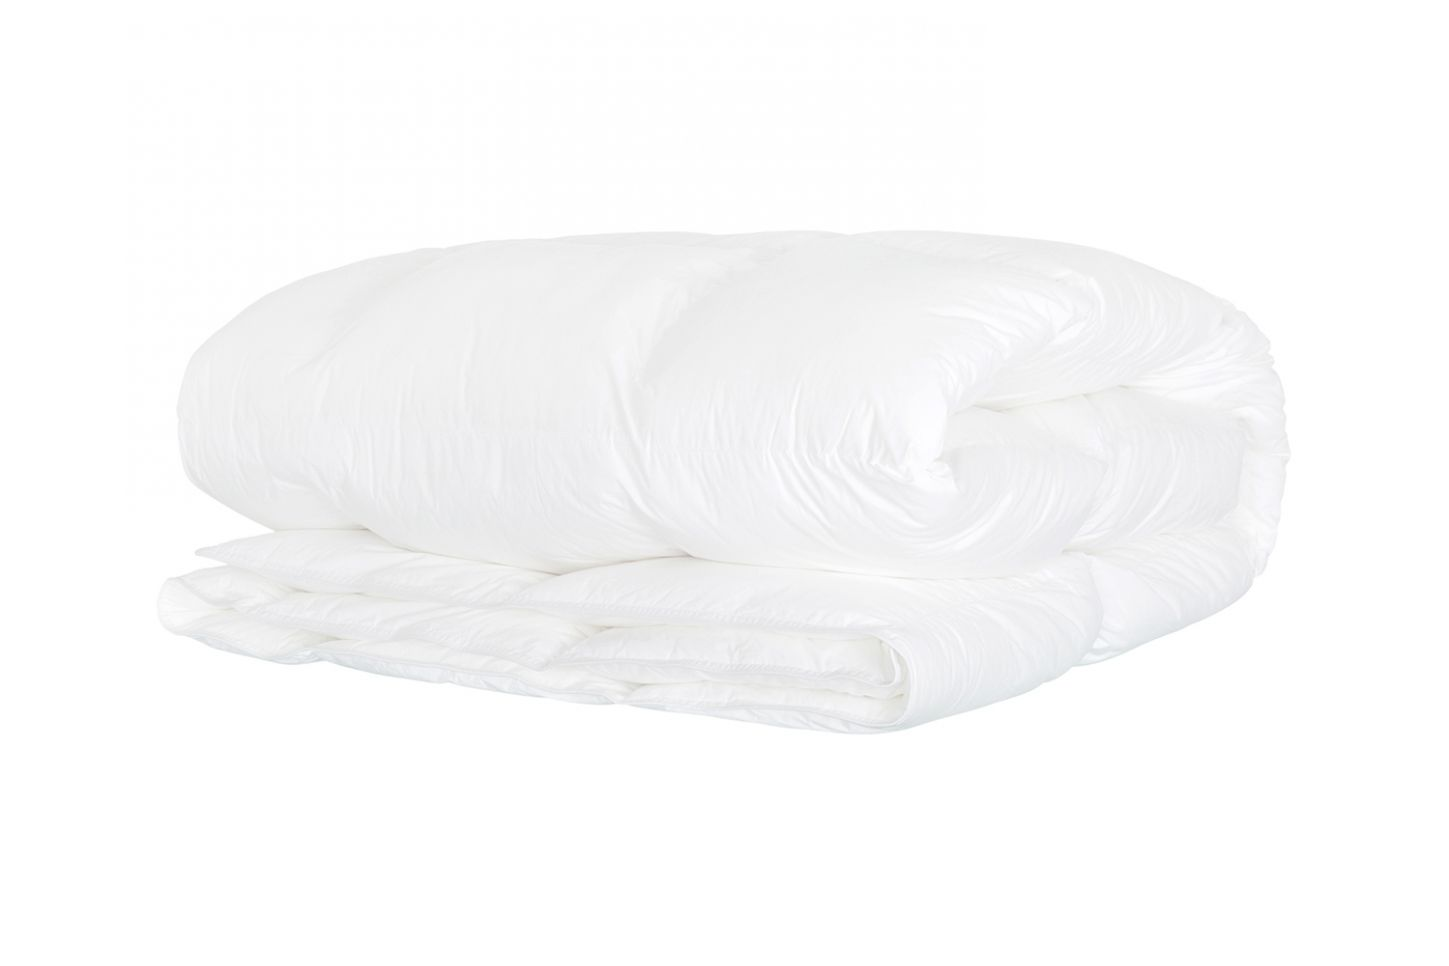 Couette 240x200 synthétique 100% coton Sonje Orka hiver